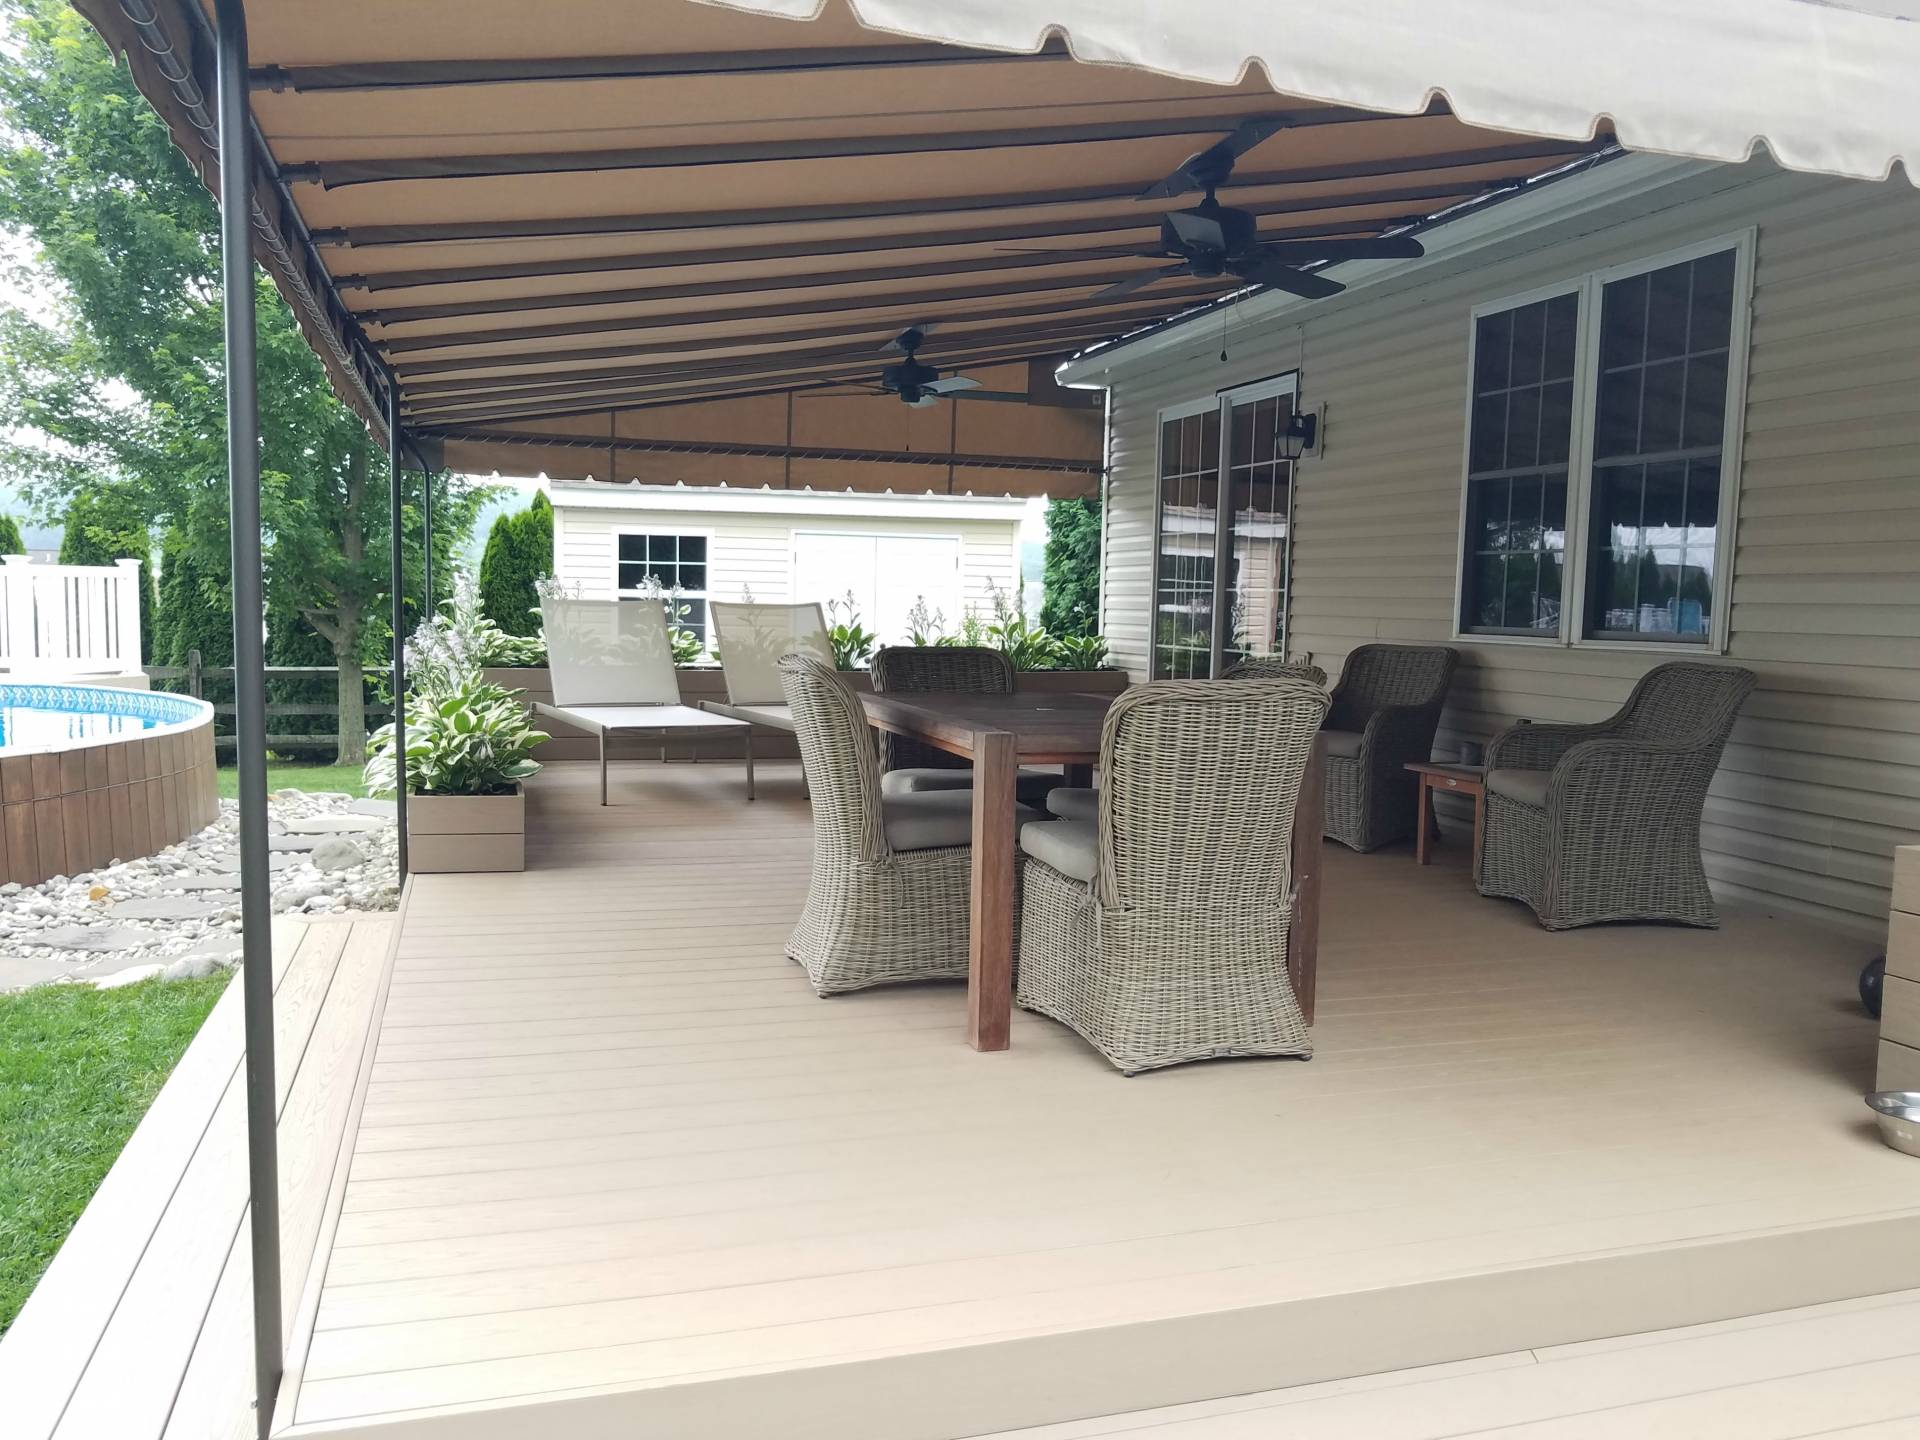 over pin photo a decking boxspan taken steel awning building composite frame boards and with deck at